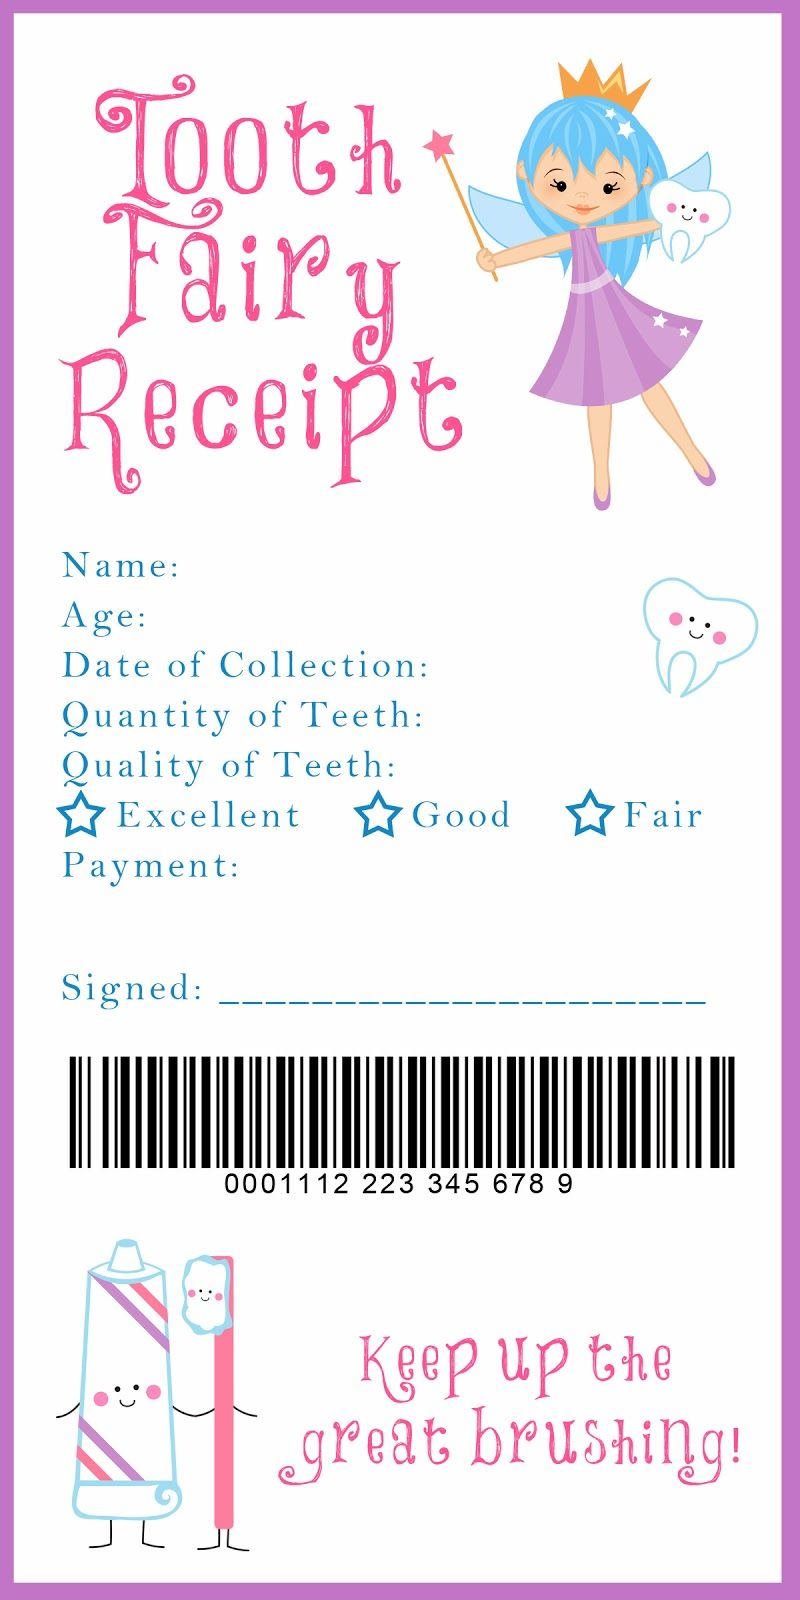 photograph about Tooth Fairy Ideas Printable called Teeth Fairy Receipt Printable keep in mind anytime Enamel